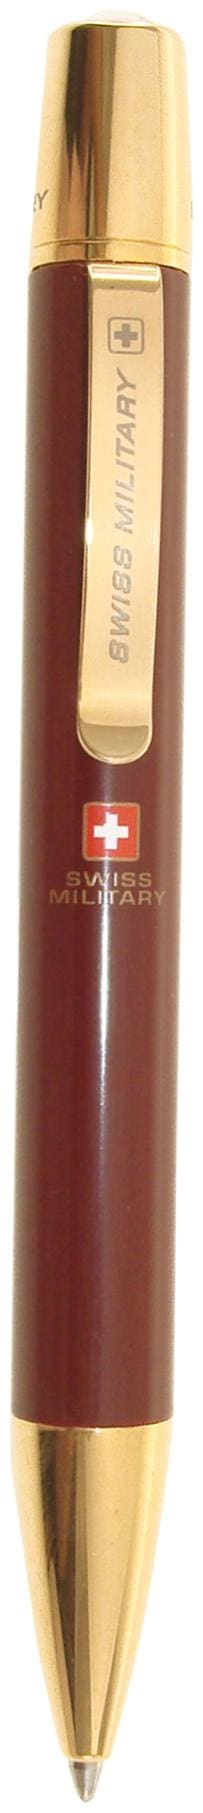 Swiss Military BP-30 Ball Pen Blue